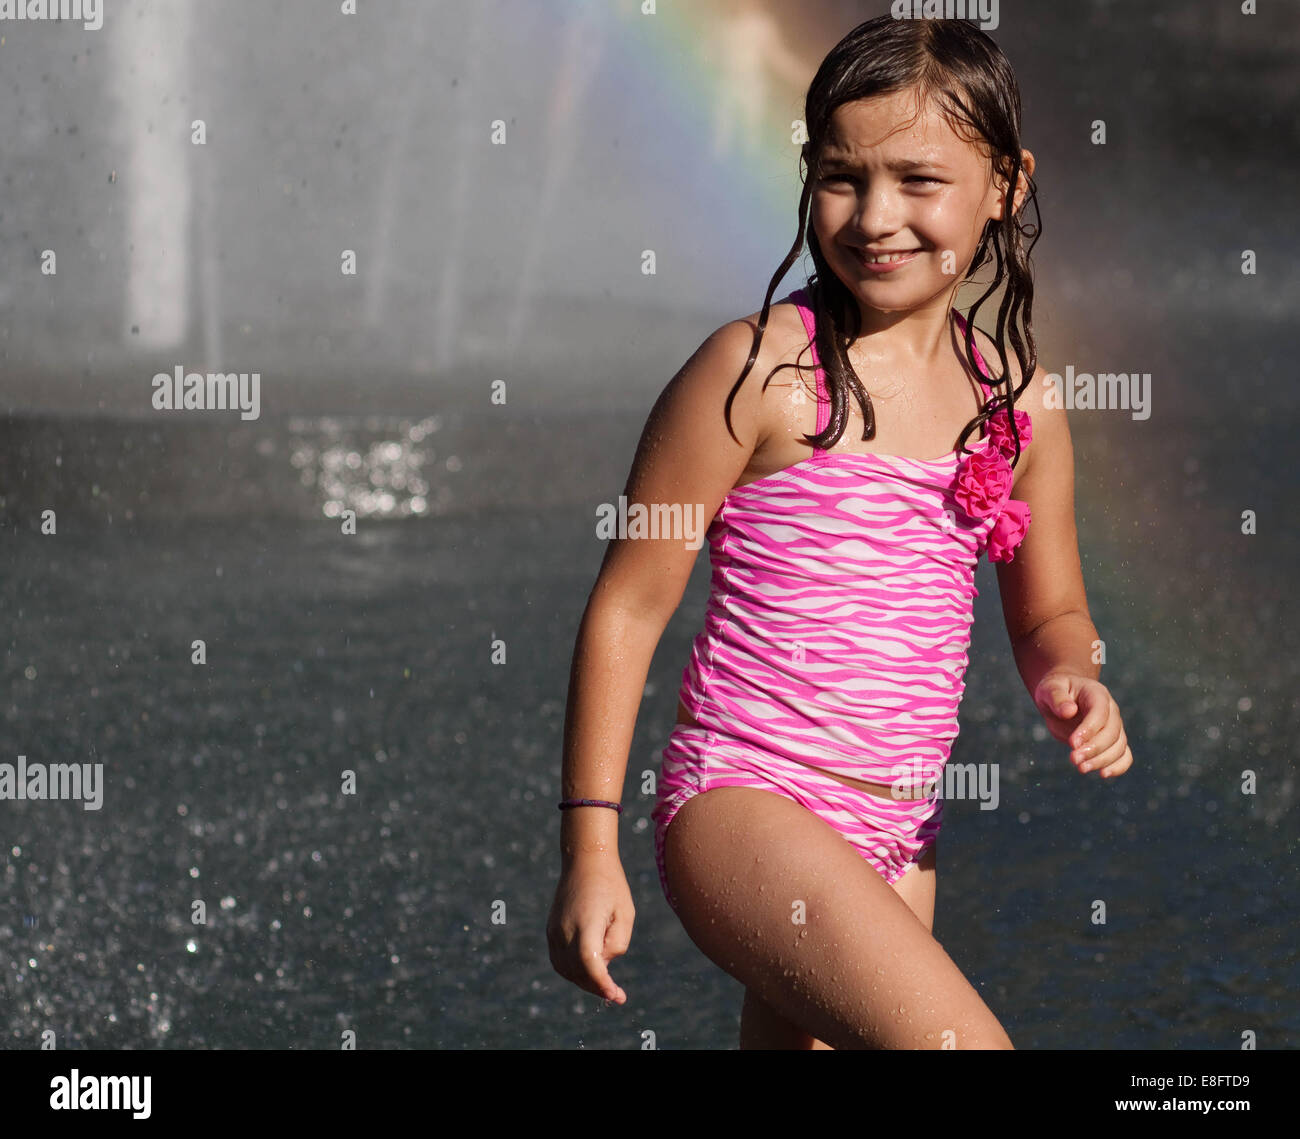 Girl wearing swimsuit standing in front of water fountain - Stock Image